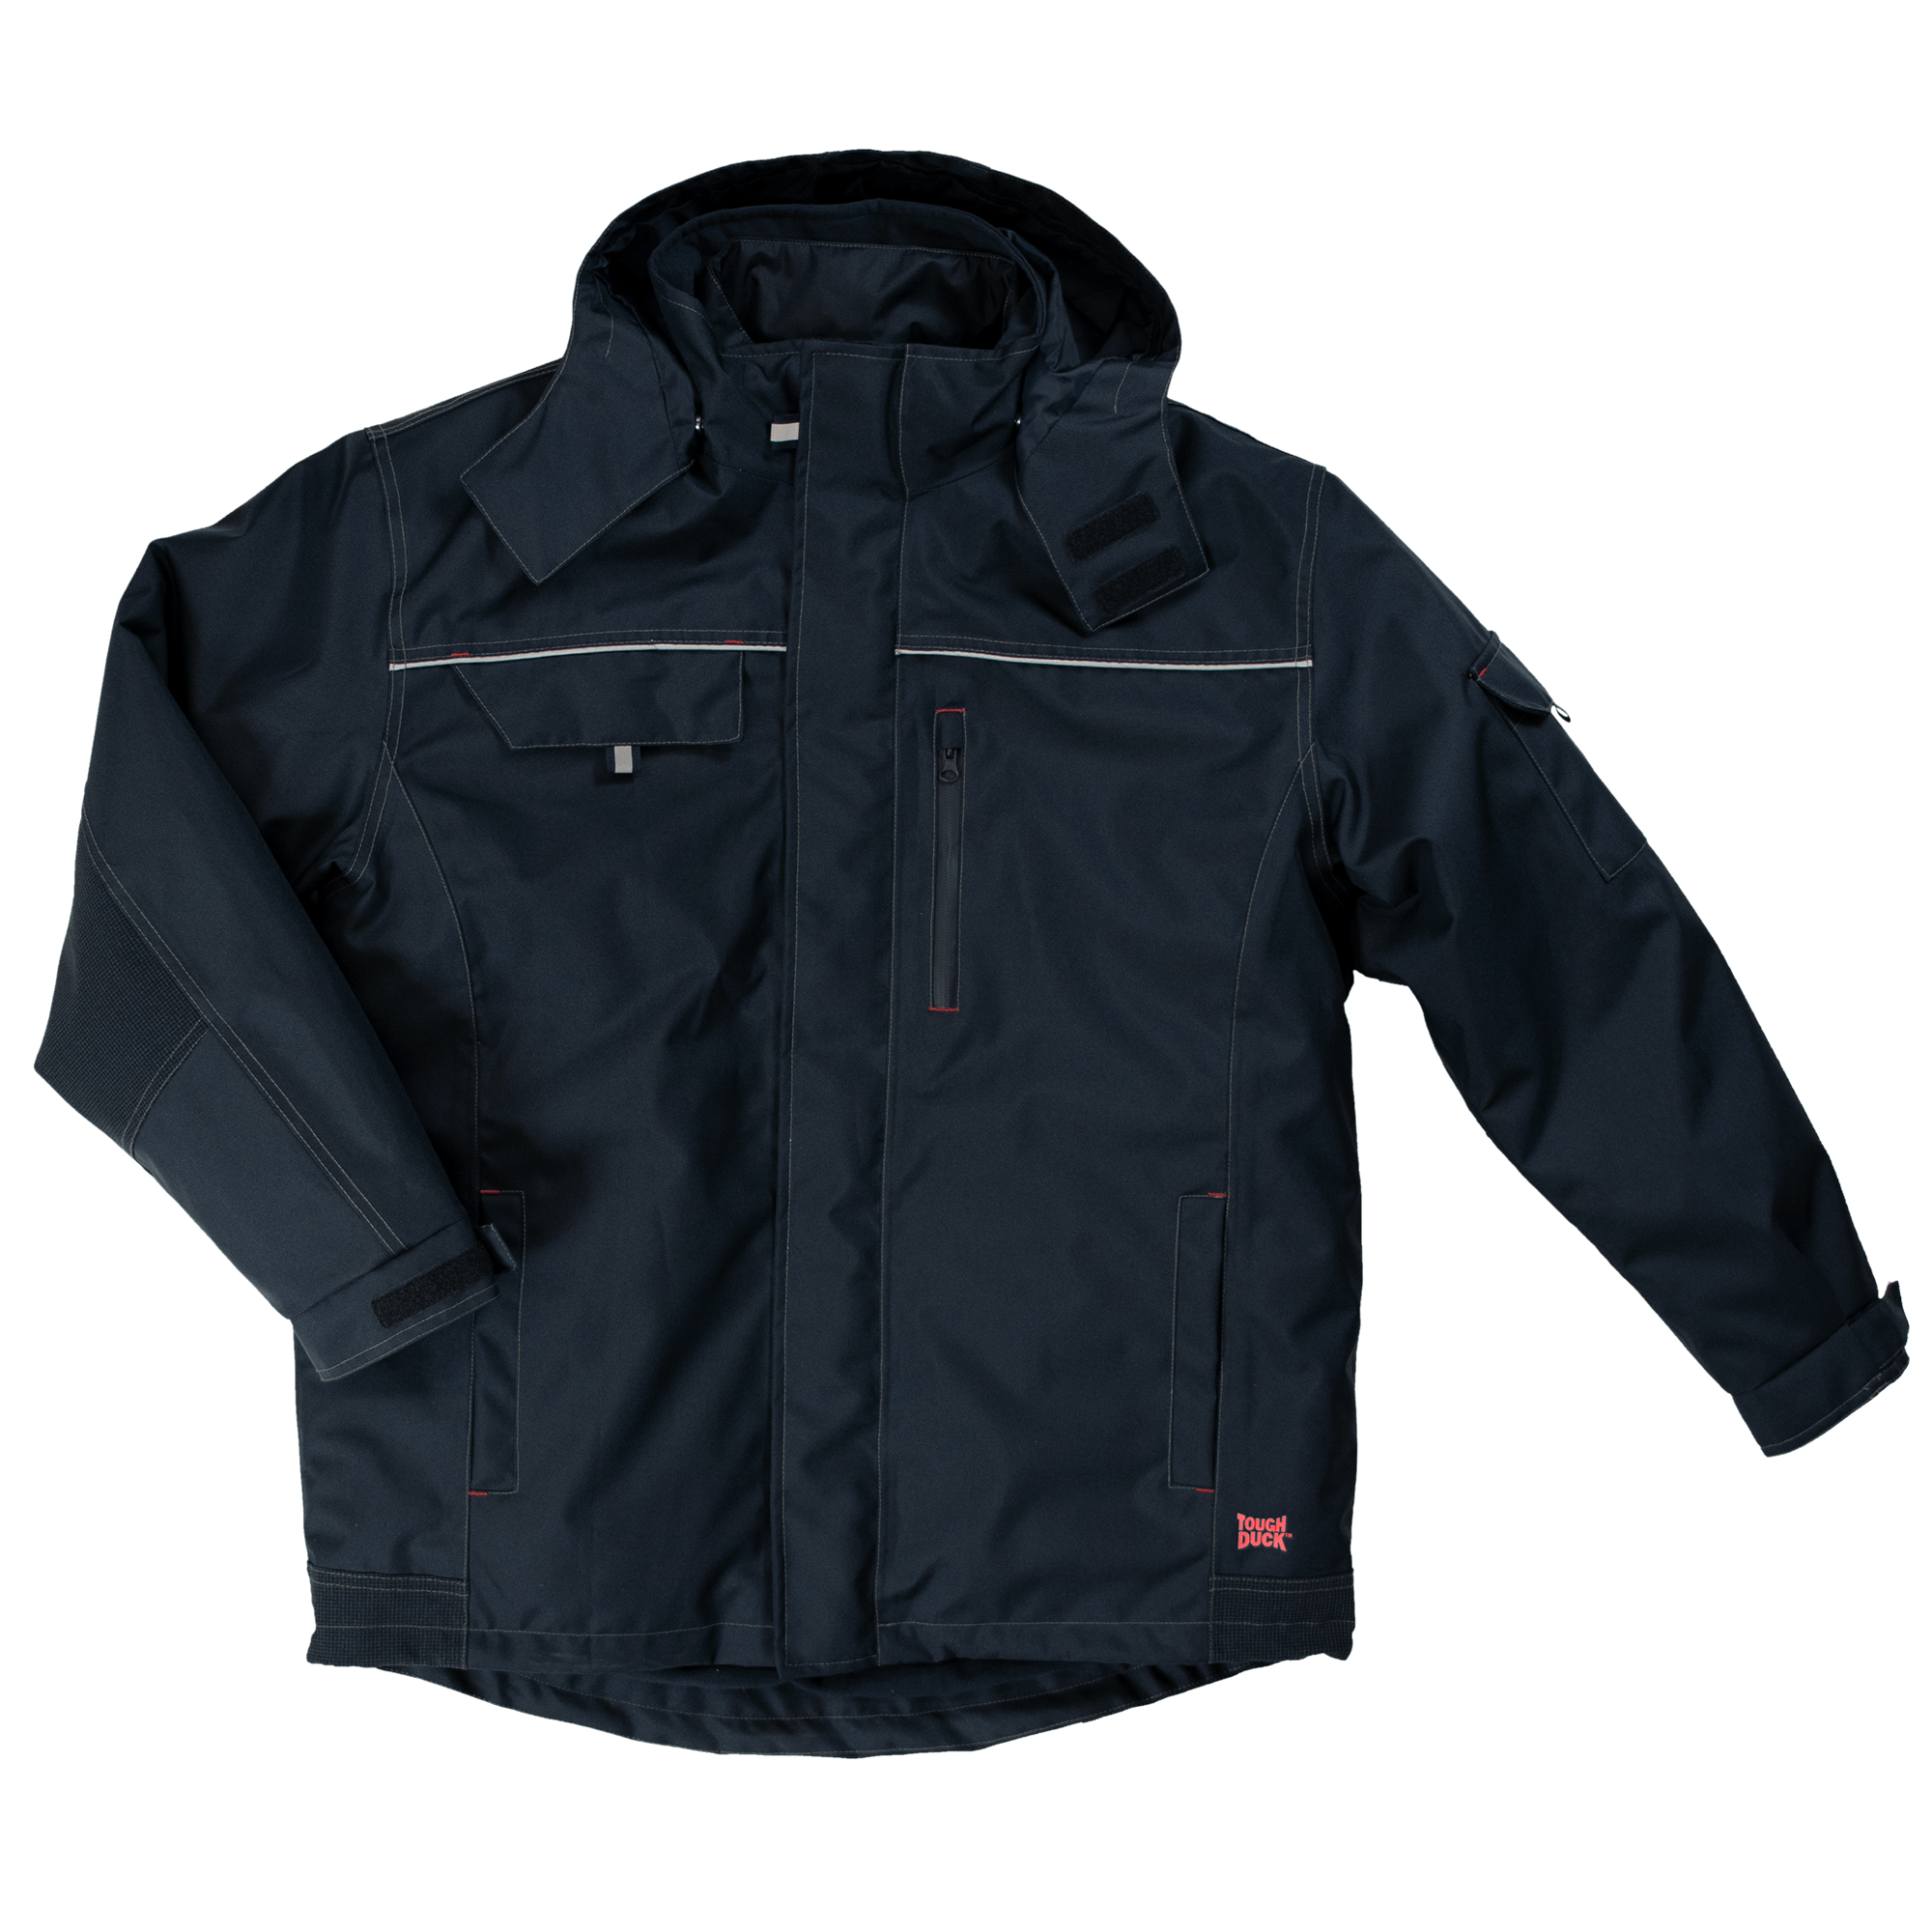 WJ14-NAVY-F-Tough-Duck-Mens-Poly-Oxford-3-in-1-Parka-Navy-Front